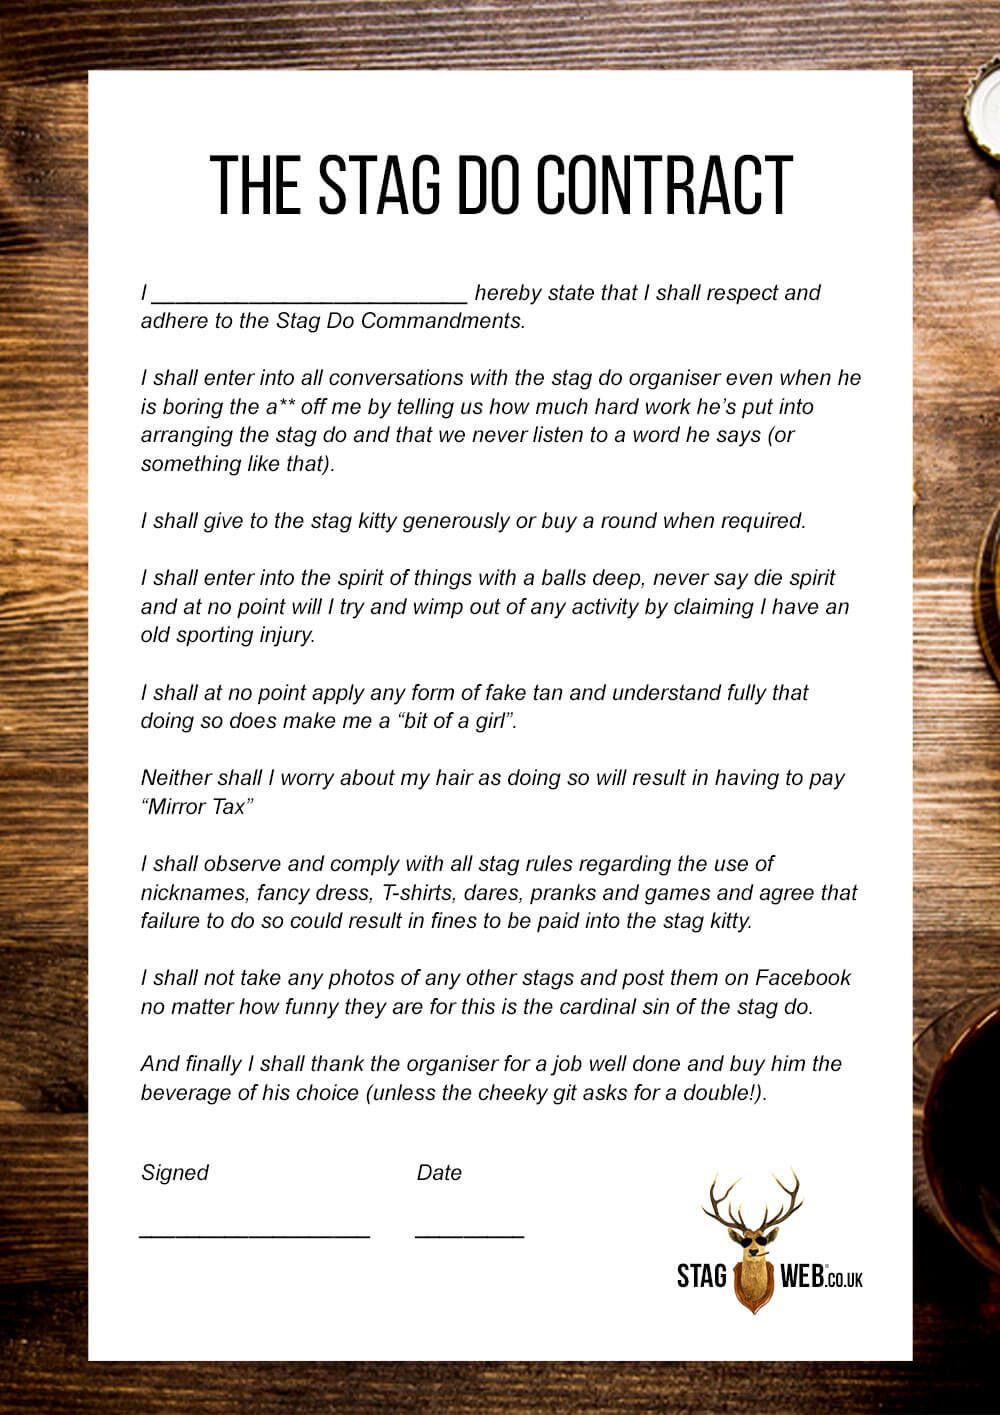 StagWeb stag do contract | Stag in 2019 | Bachelor party